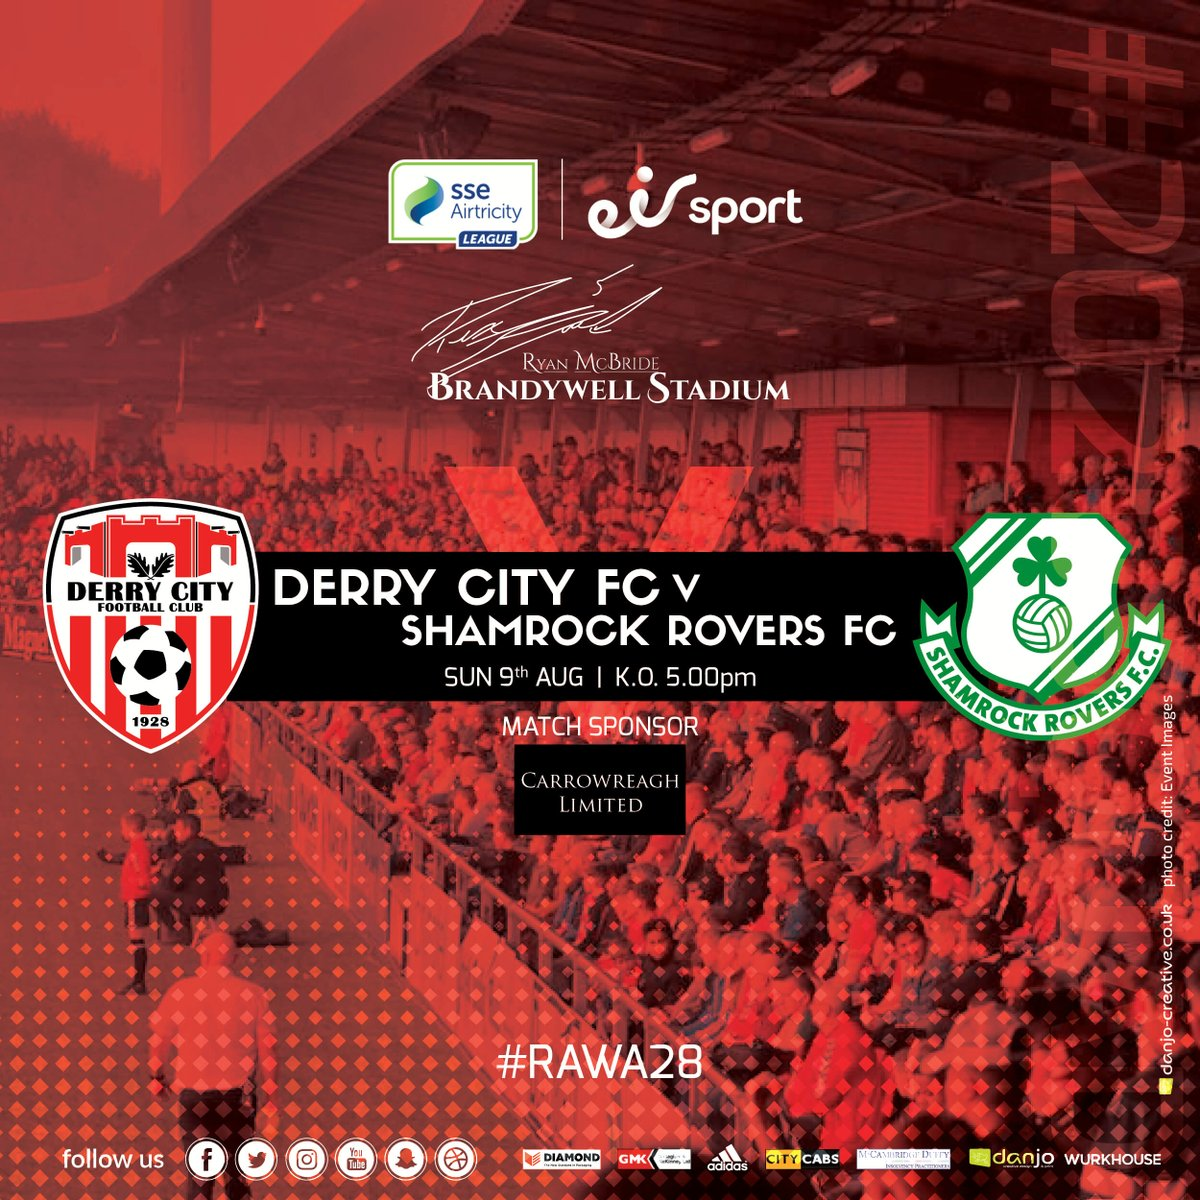 📺 City host @ShamrockRovers this Sunday at the Brandywell in the @SSEAirtricityLg. The game will be broadcast on @eirSport. KO 5pm. Match Sponsor: Carrowreagh Ltd 🔴⚪️ #RAWA28